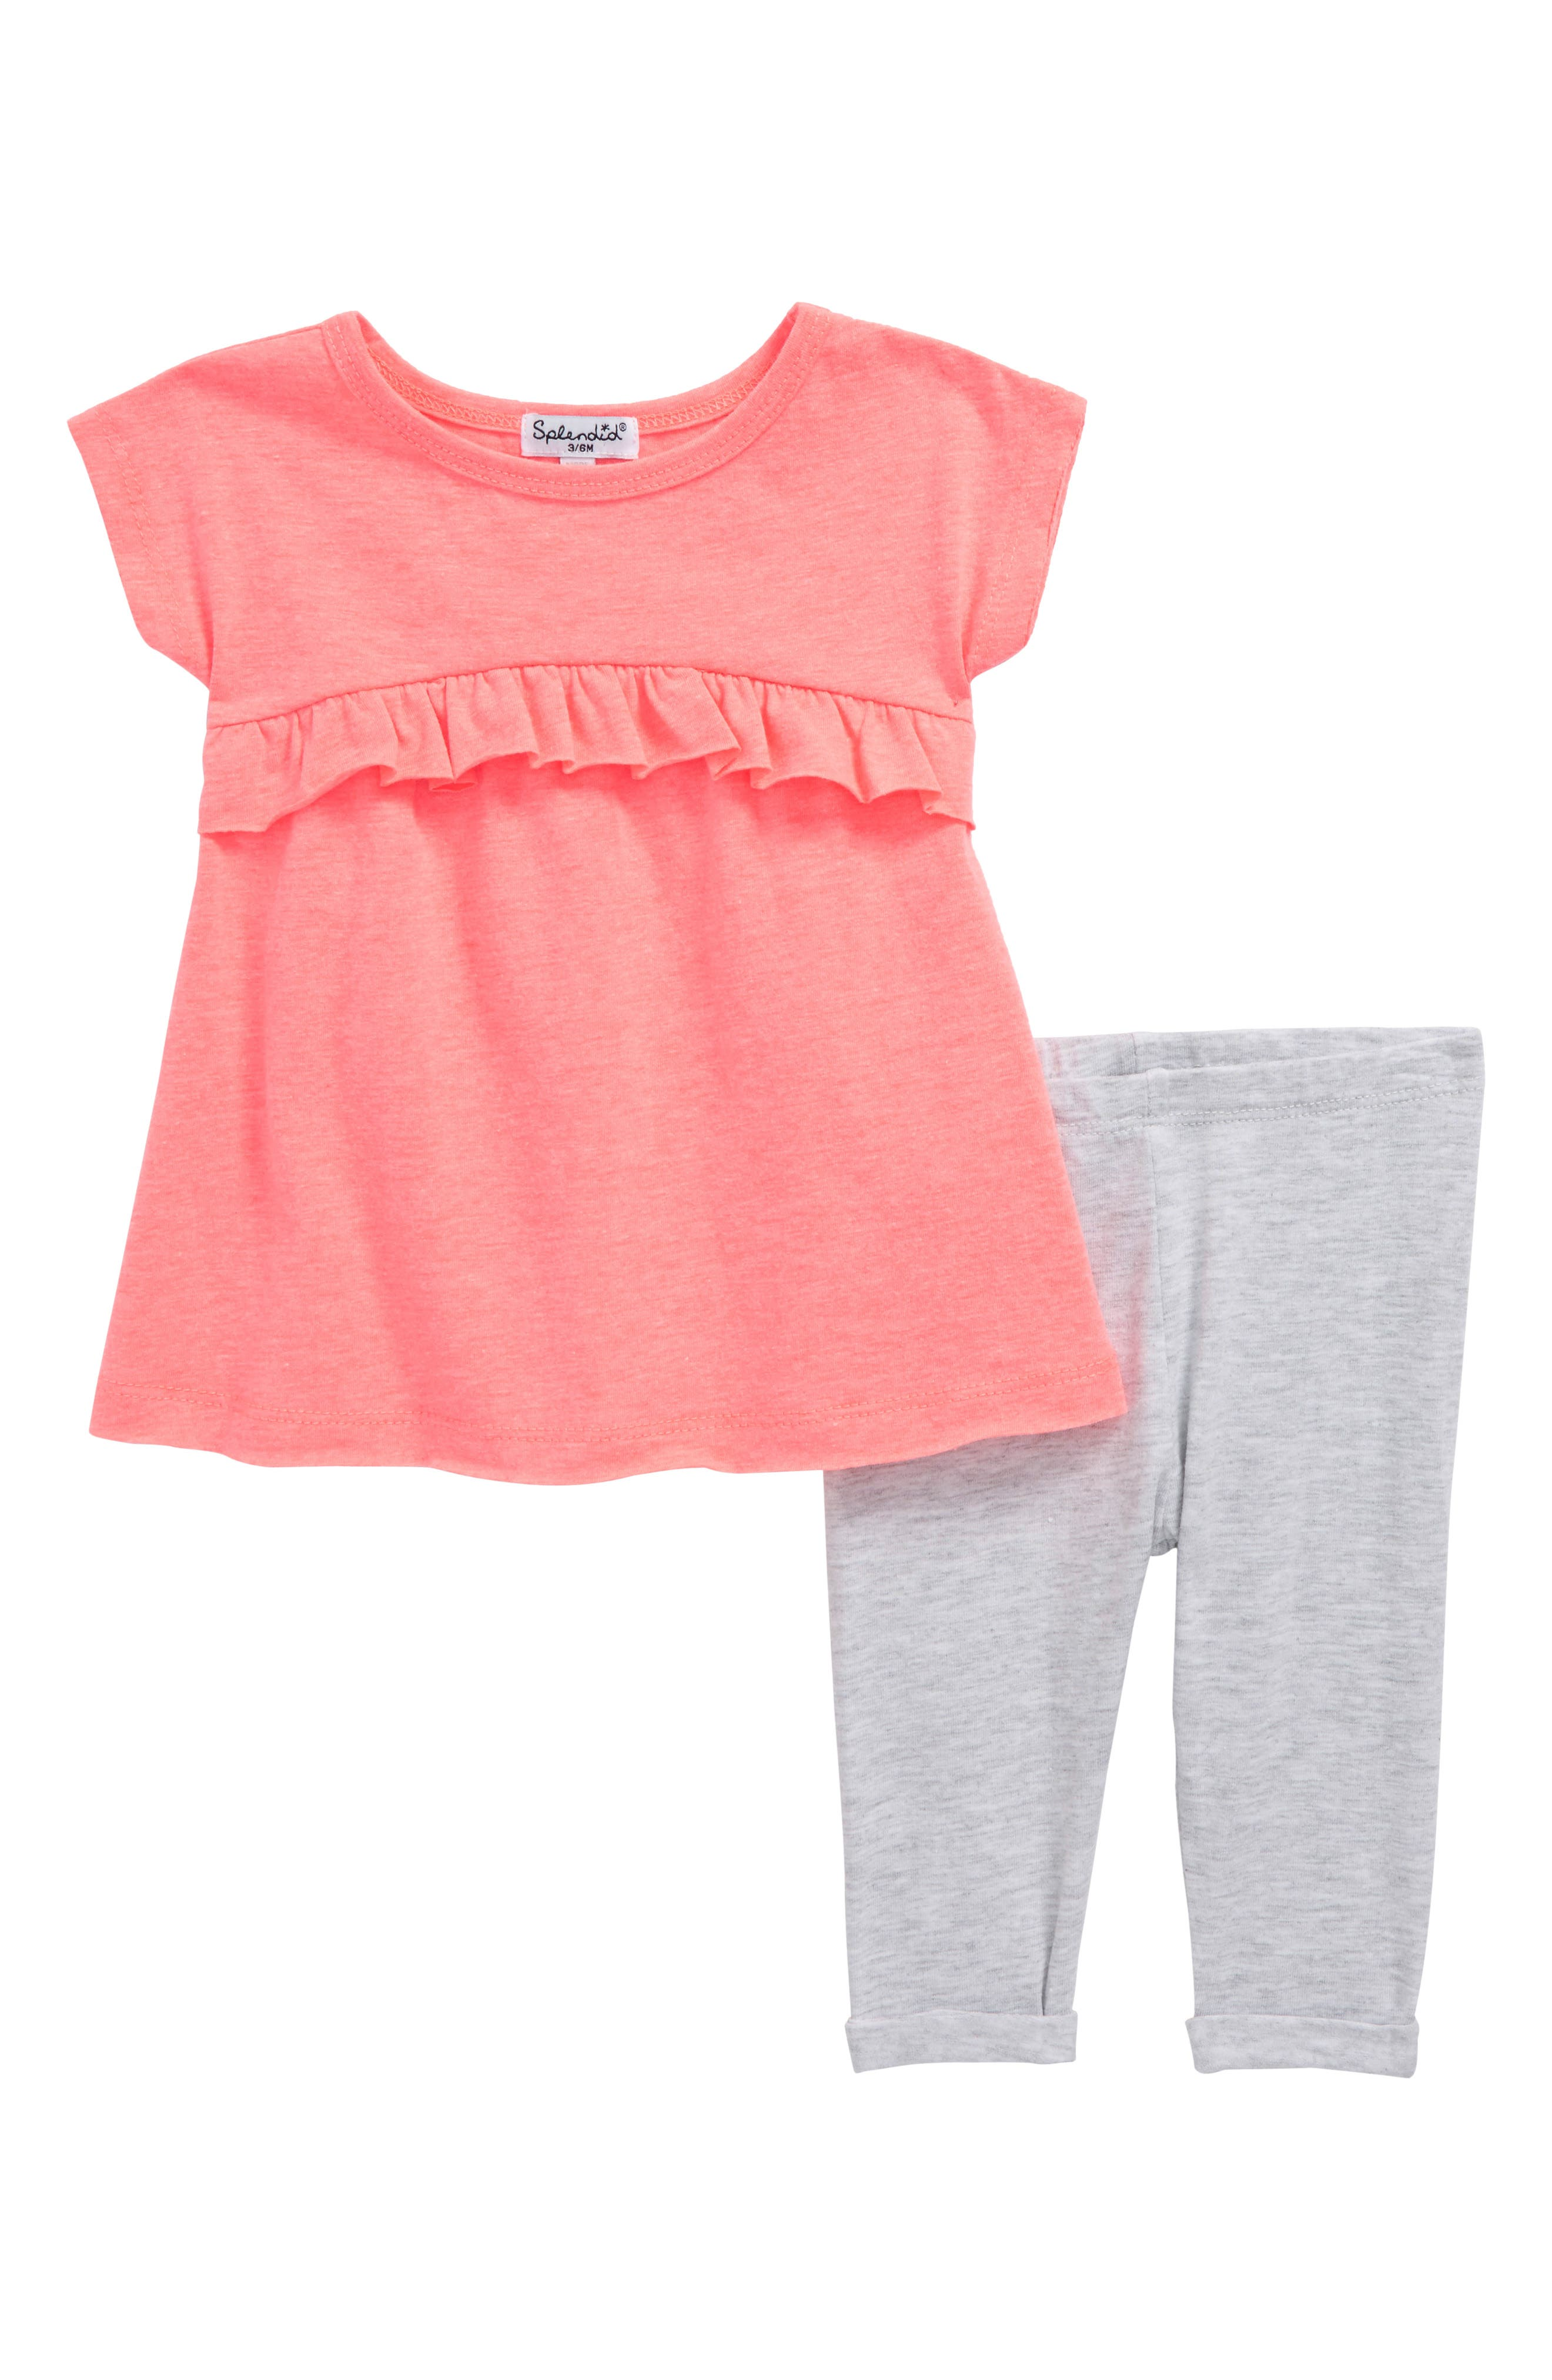 Main Image - Splendid Ruffle Swing Top & Leggings Set (Baby Girls)